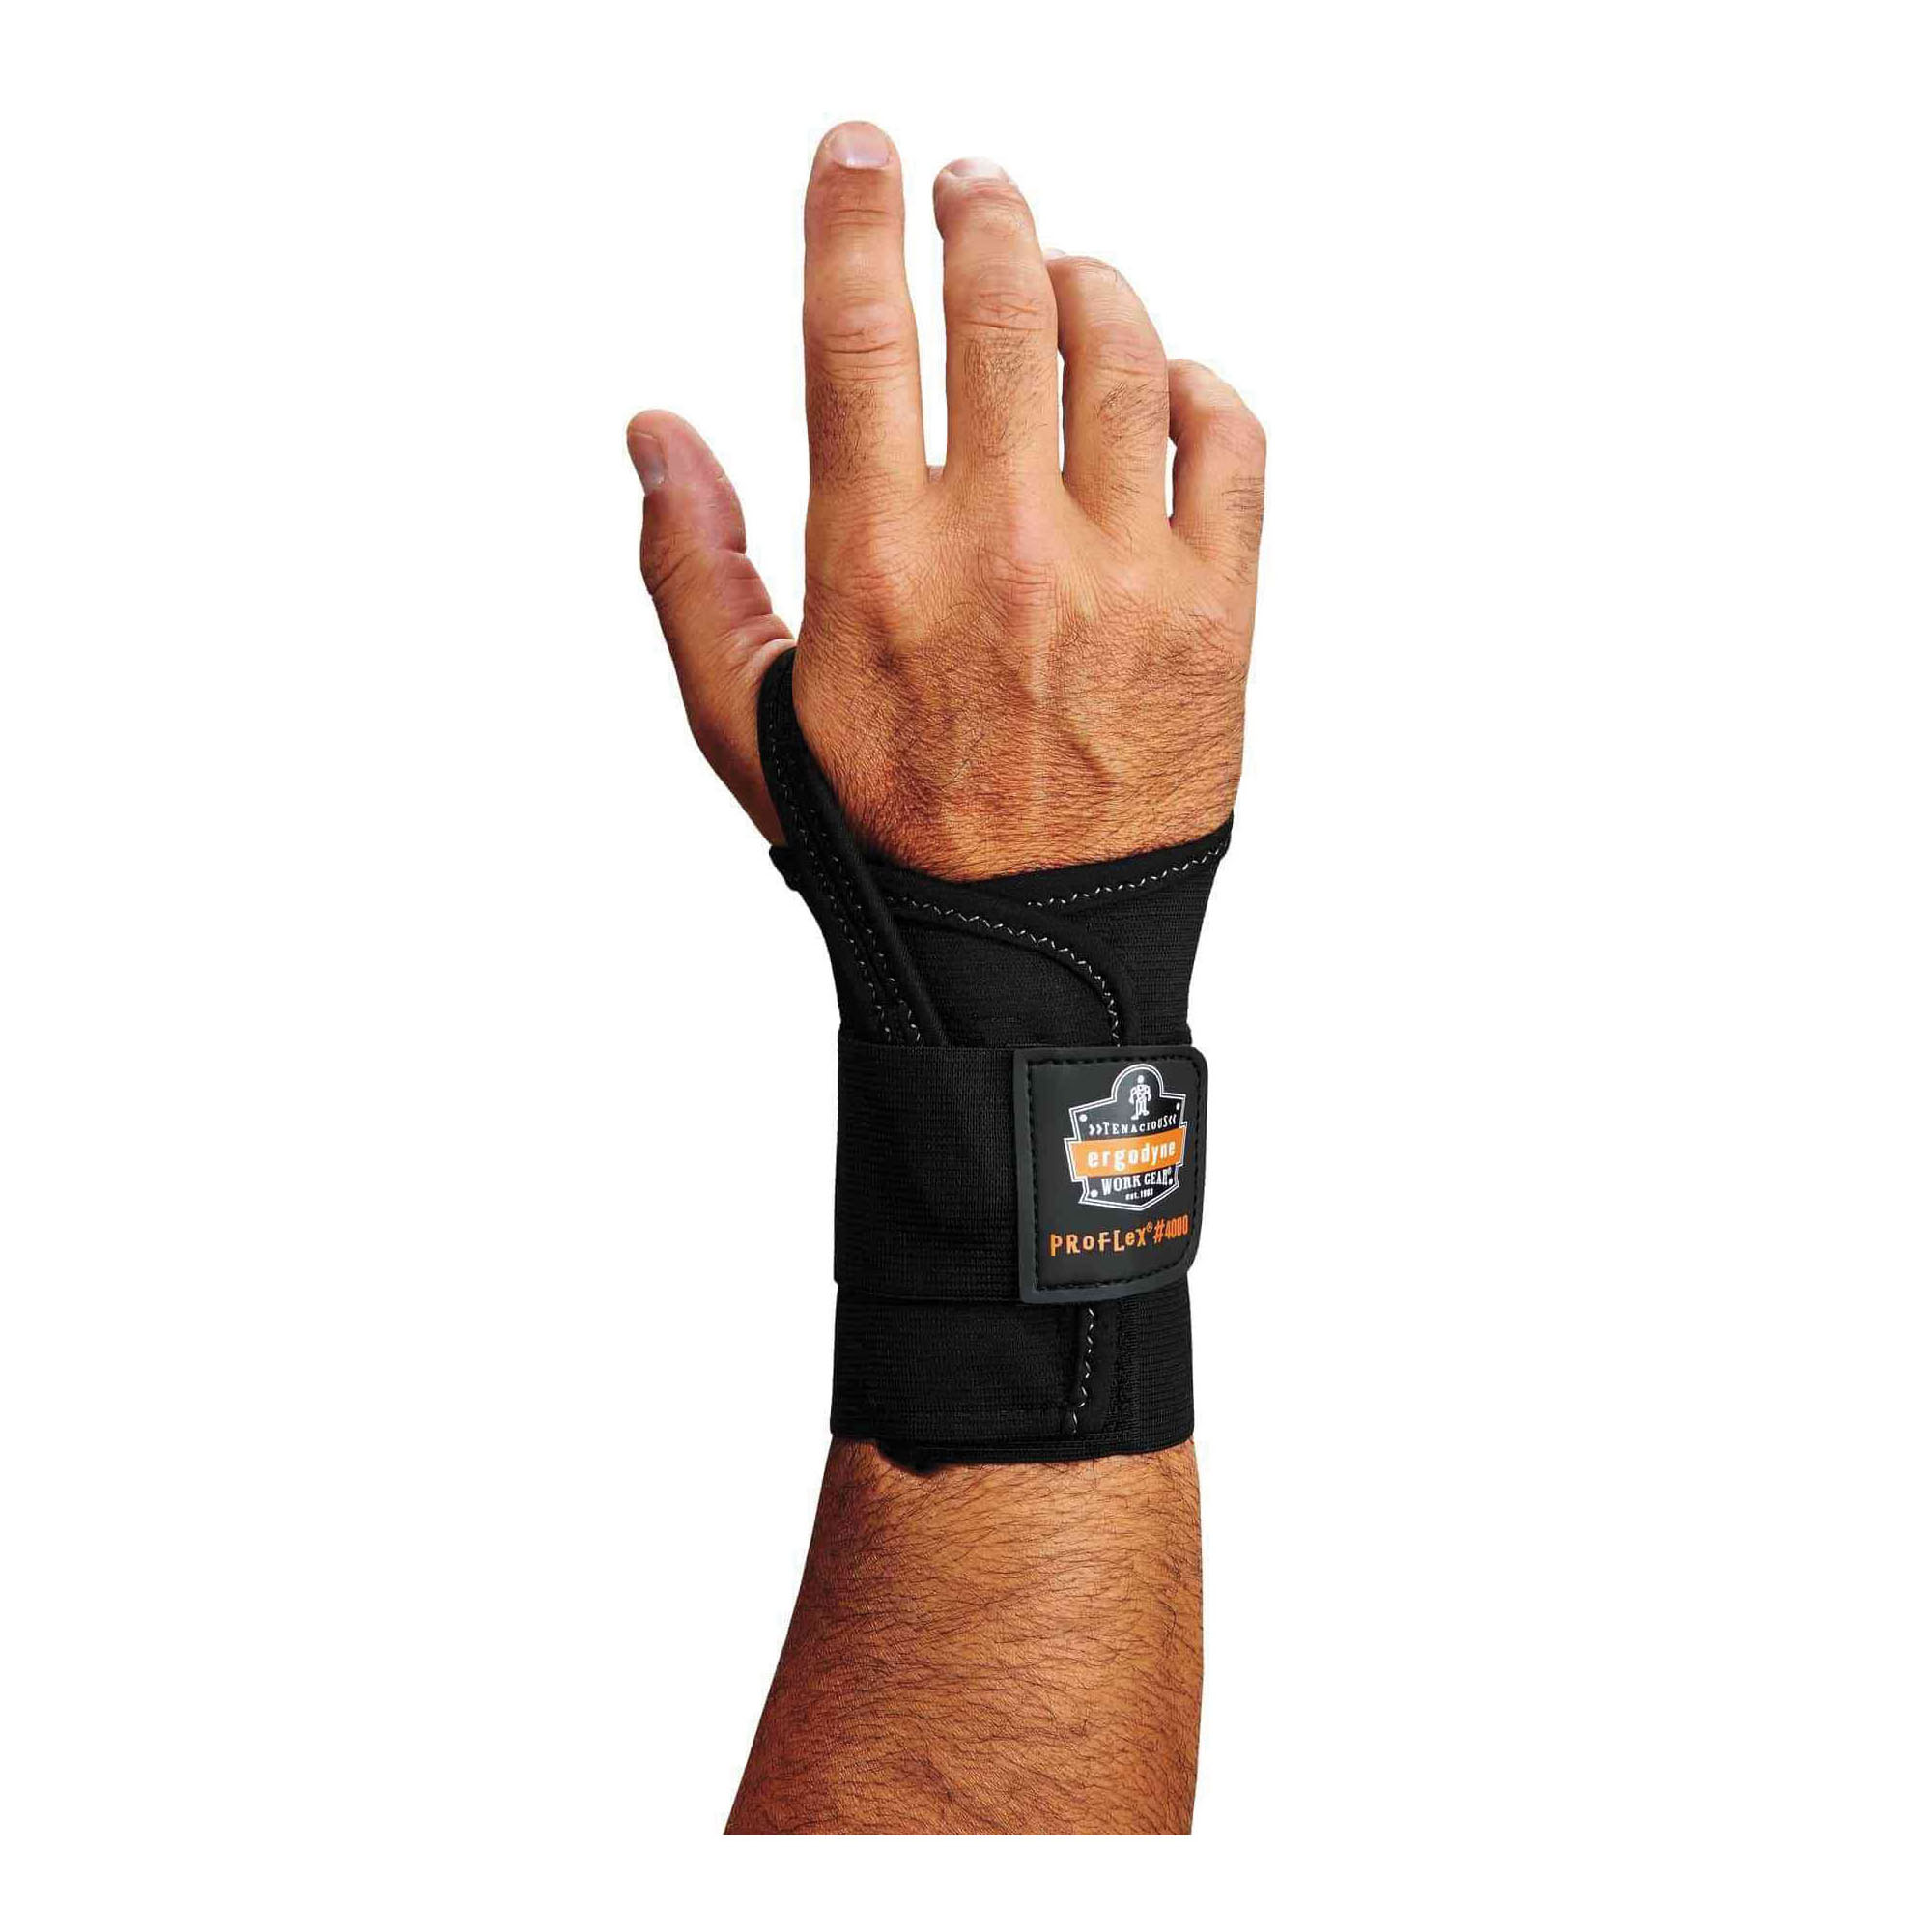 ProFlex® 70002 4000, S, Right Hand, 2-Stage Hook and Loop Wrist/Elastic Closure, Black